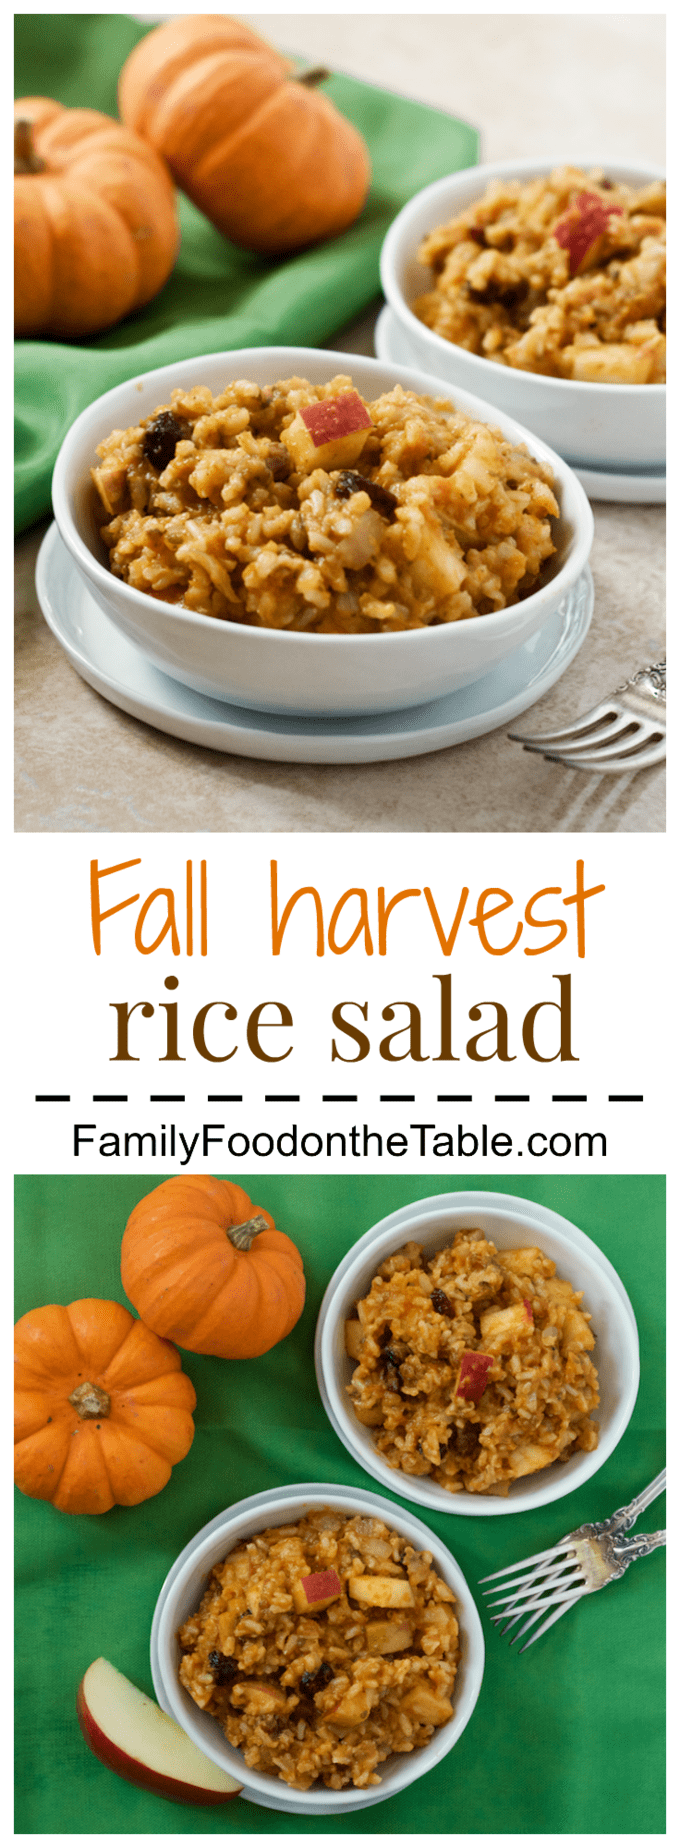 Fall harvest brown rice salad with pumpkin, apples, raisins and nuts! | FamilyFoodontheTable.com